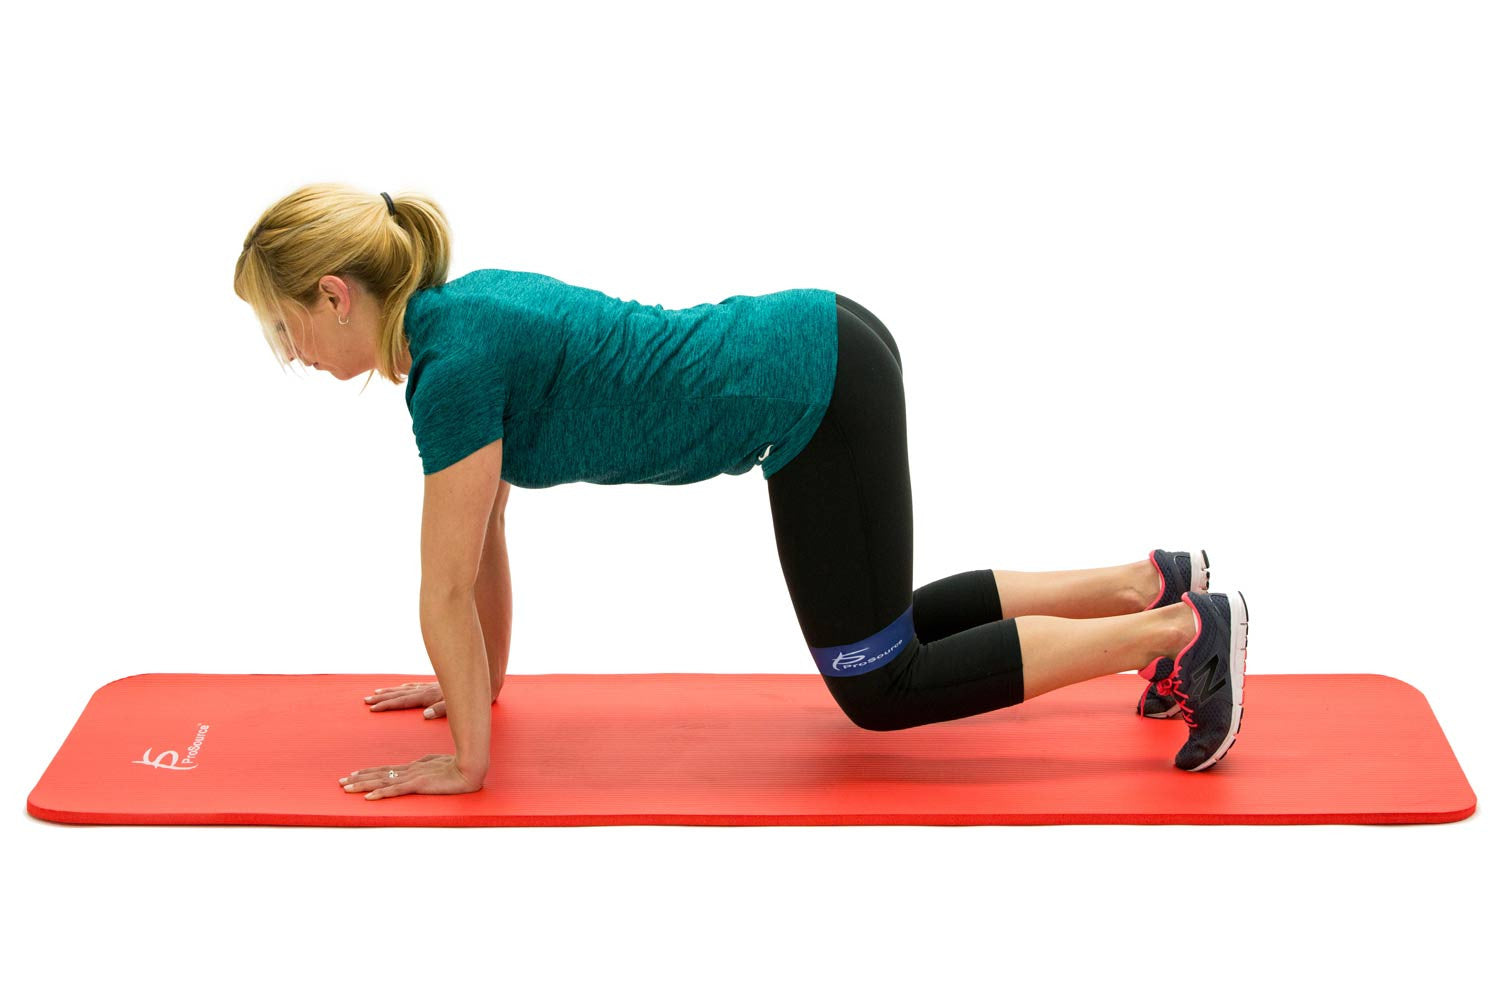 Woman using ProsourceFit loop resistance bands on ProsourceFit extra thick yoga and pilates mat